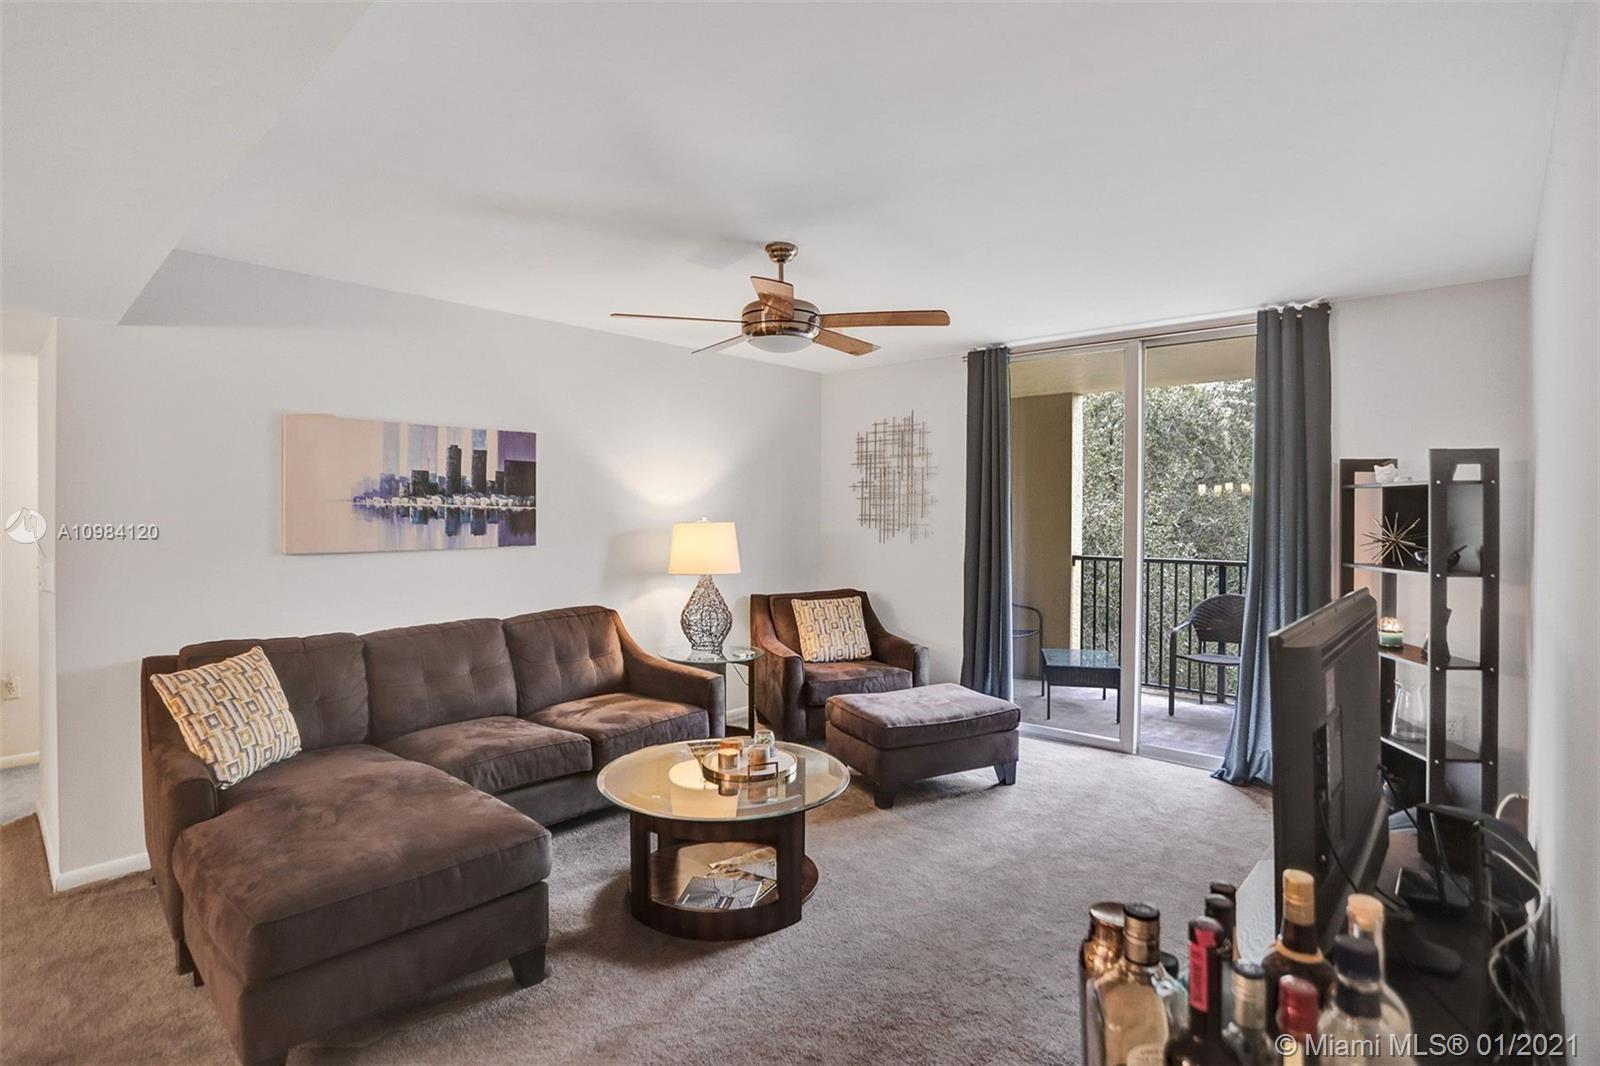 This cozy 2 bedroom, 2 bathroom condo delivers elevated living with an array of attractive offerings